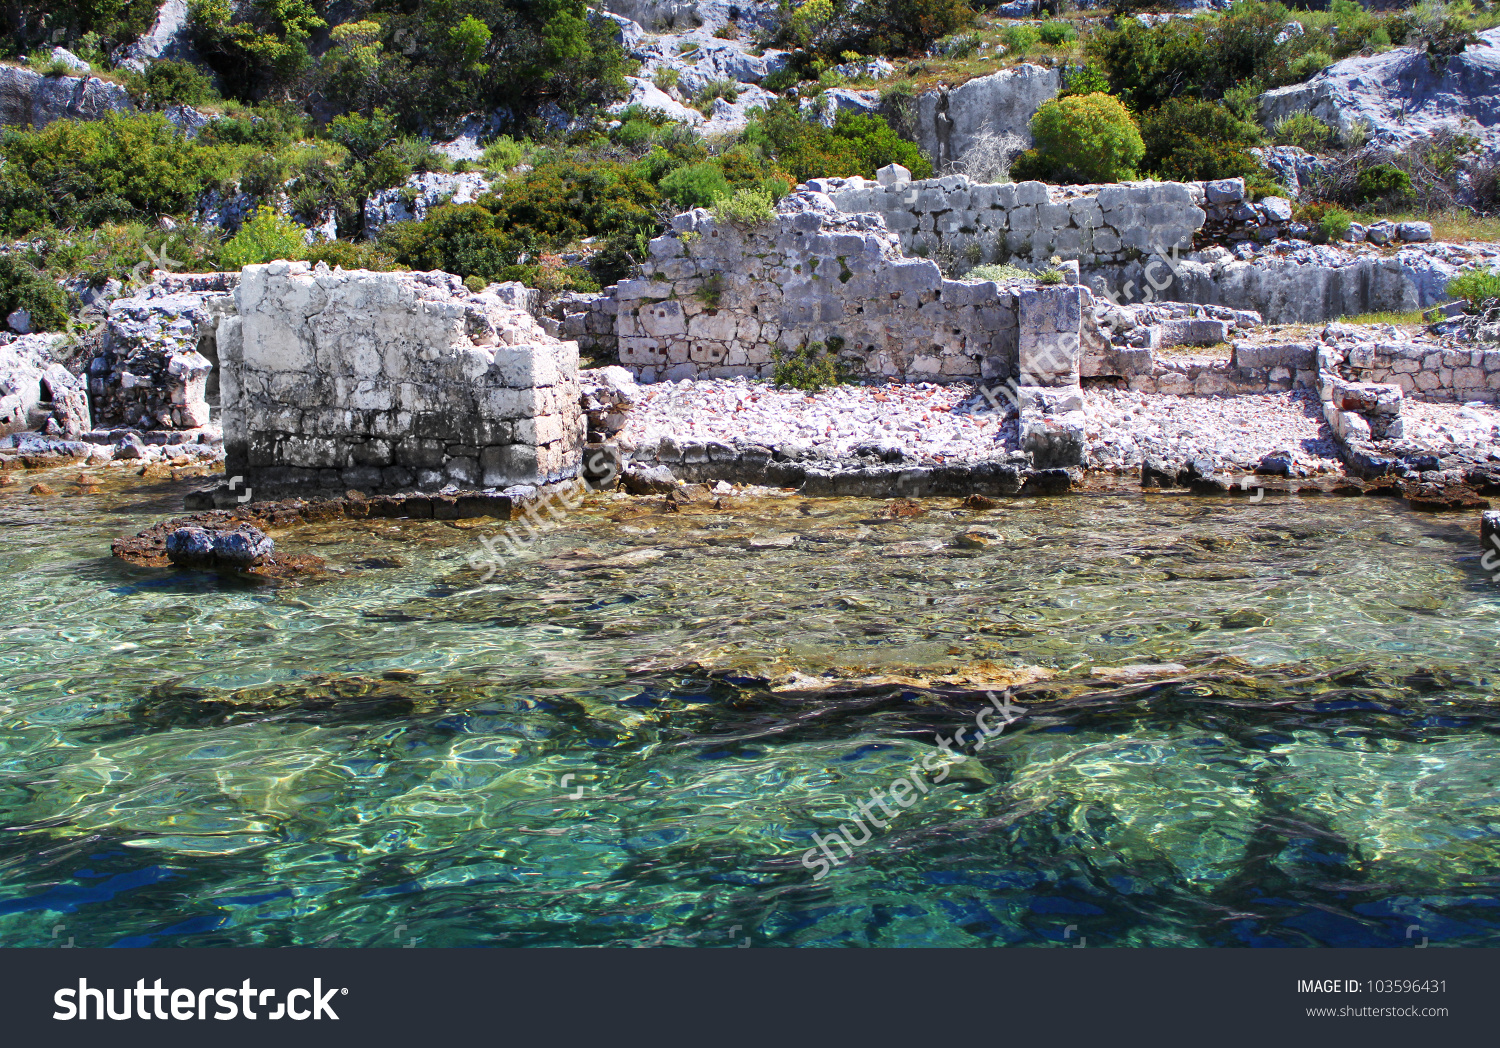 Sunken Lycian City On The Kekova Island, Turkey Stock Photo.